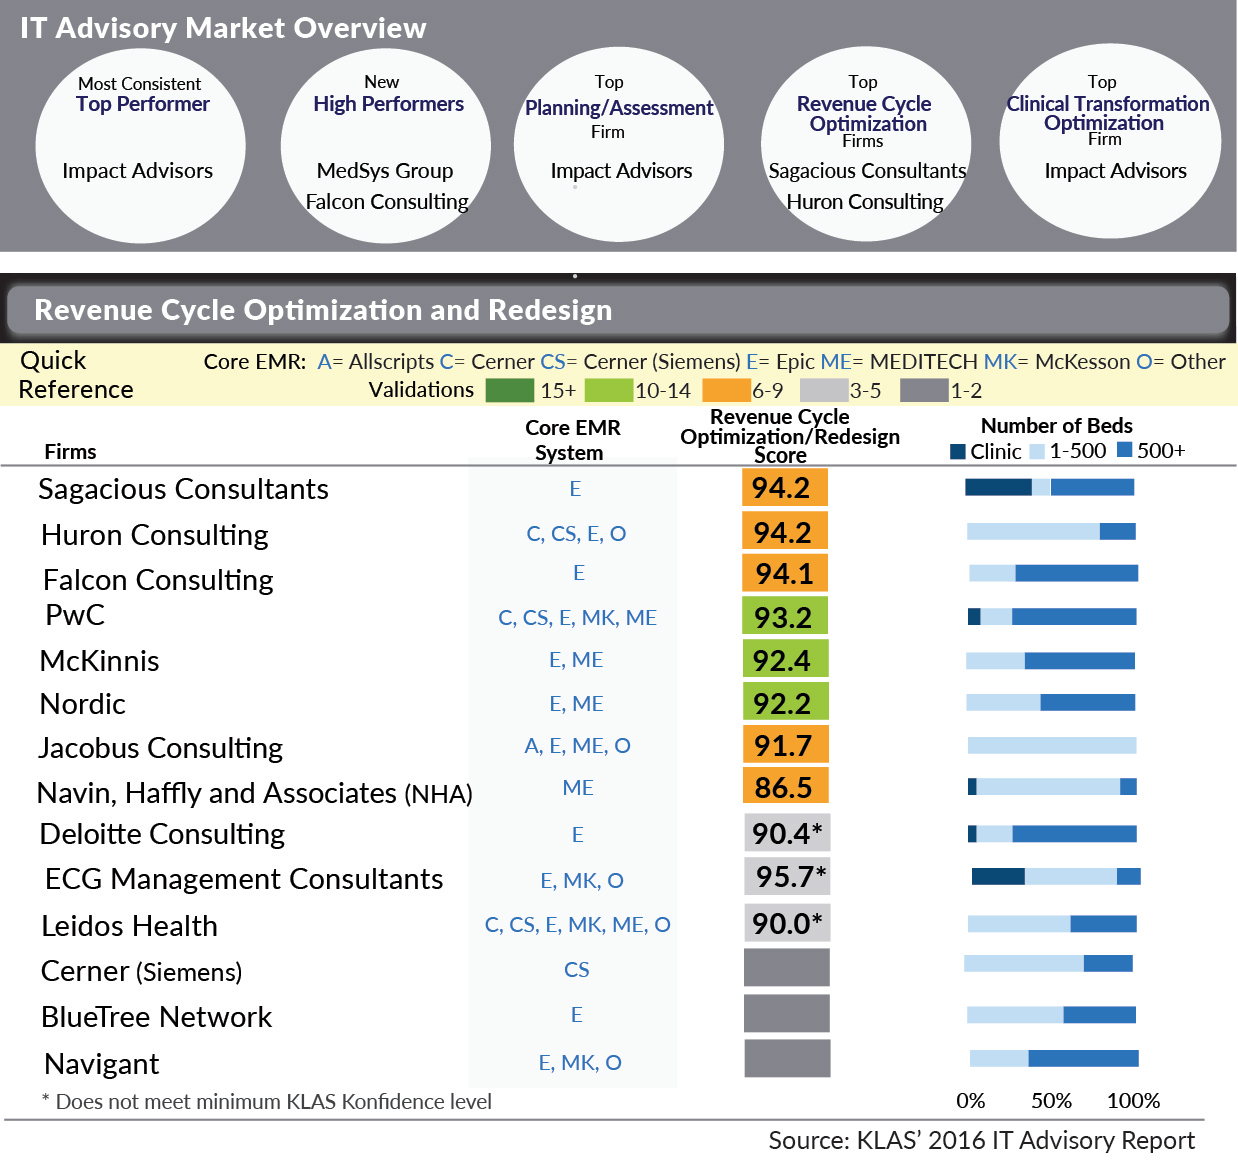 Sagacious Consultants Is Highest Rated Firm for Revenue-Cycle